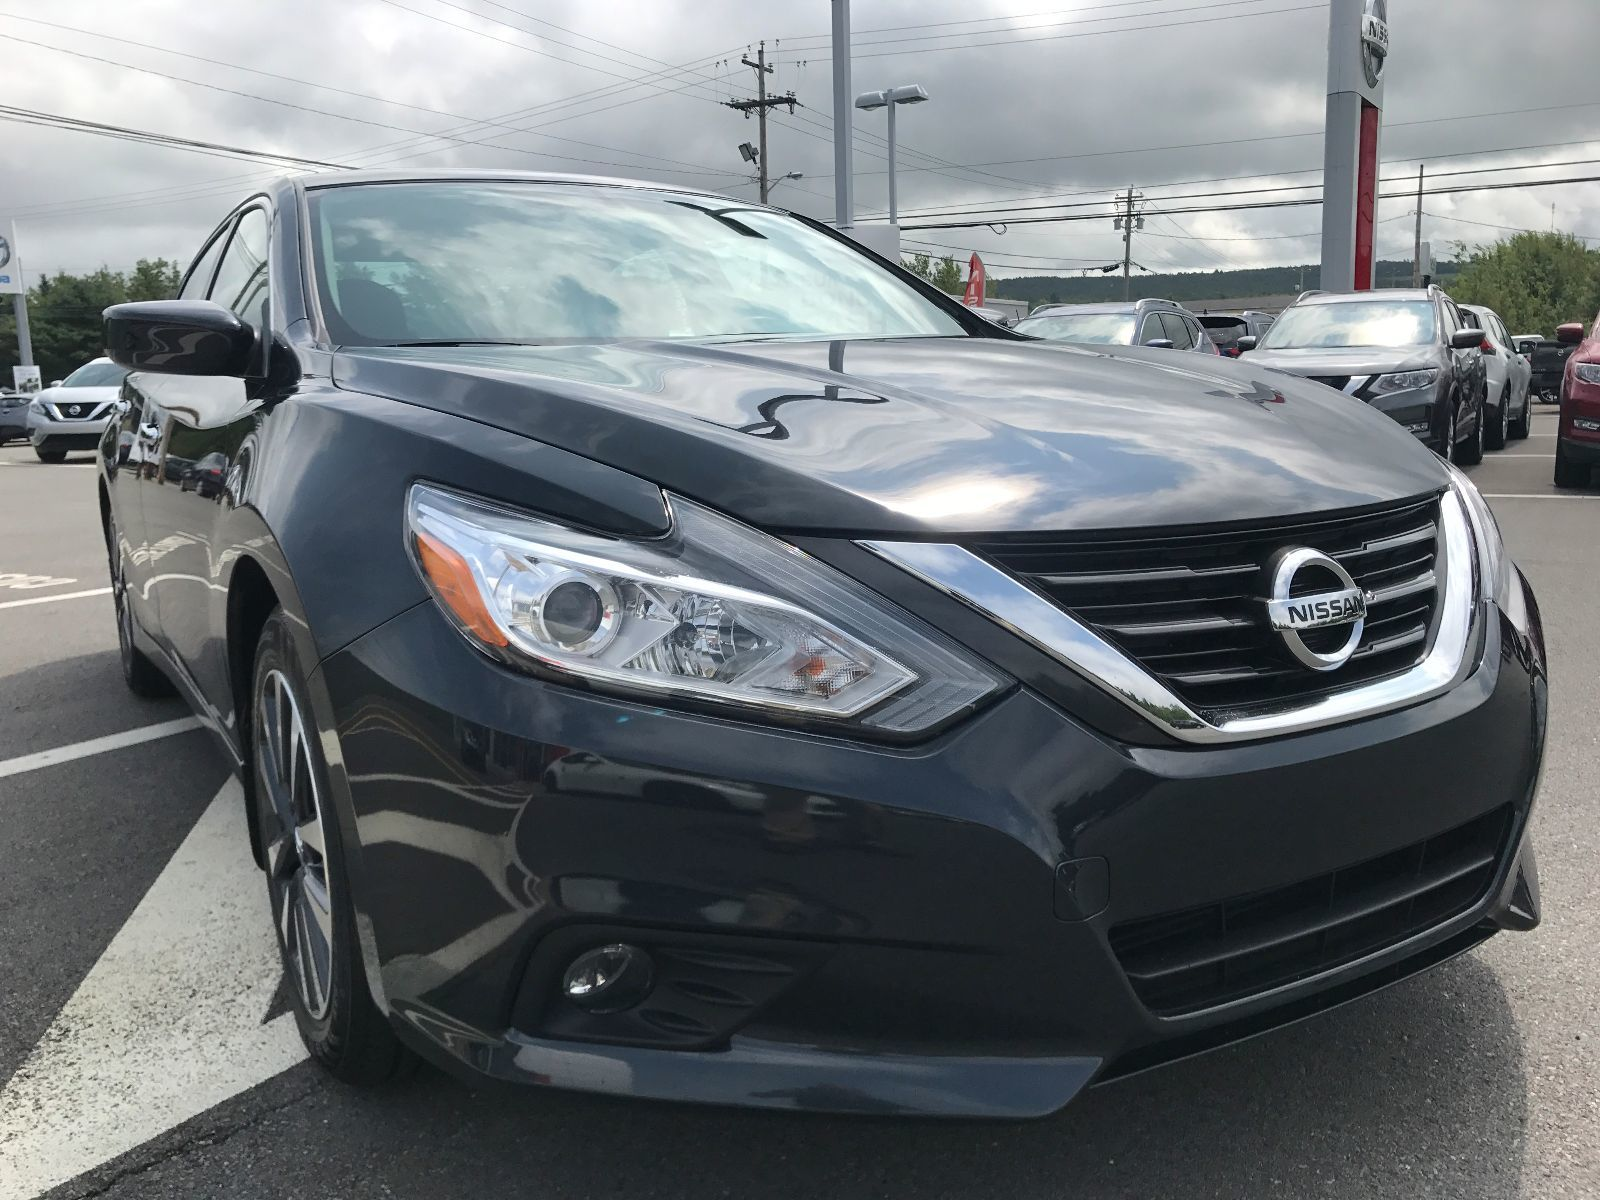 speed altimas doors open nissan recalls sv news for might at that altima roadshow